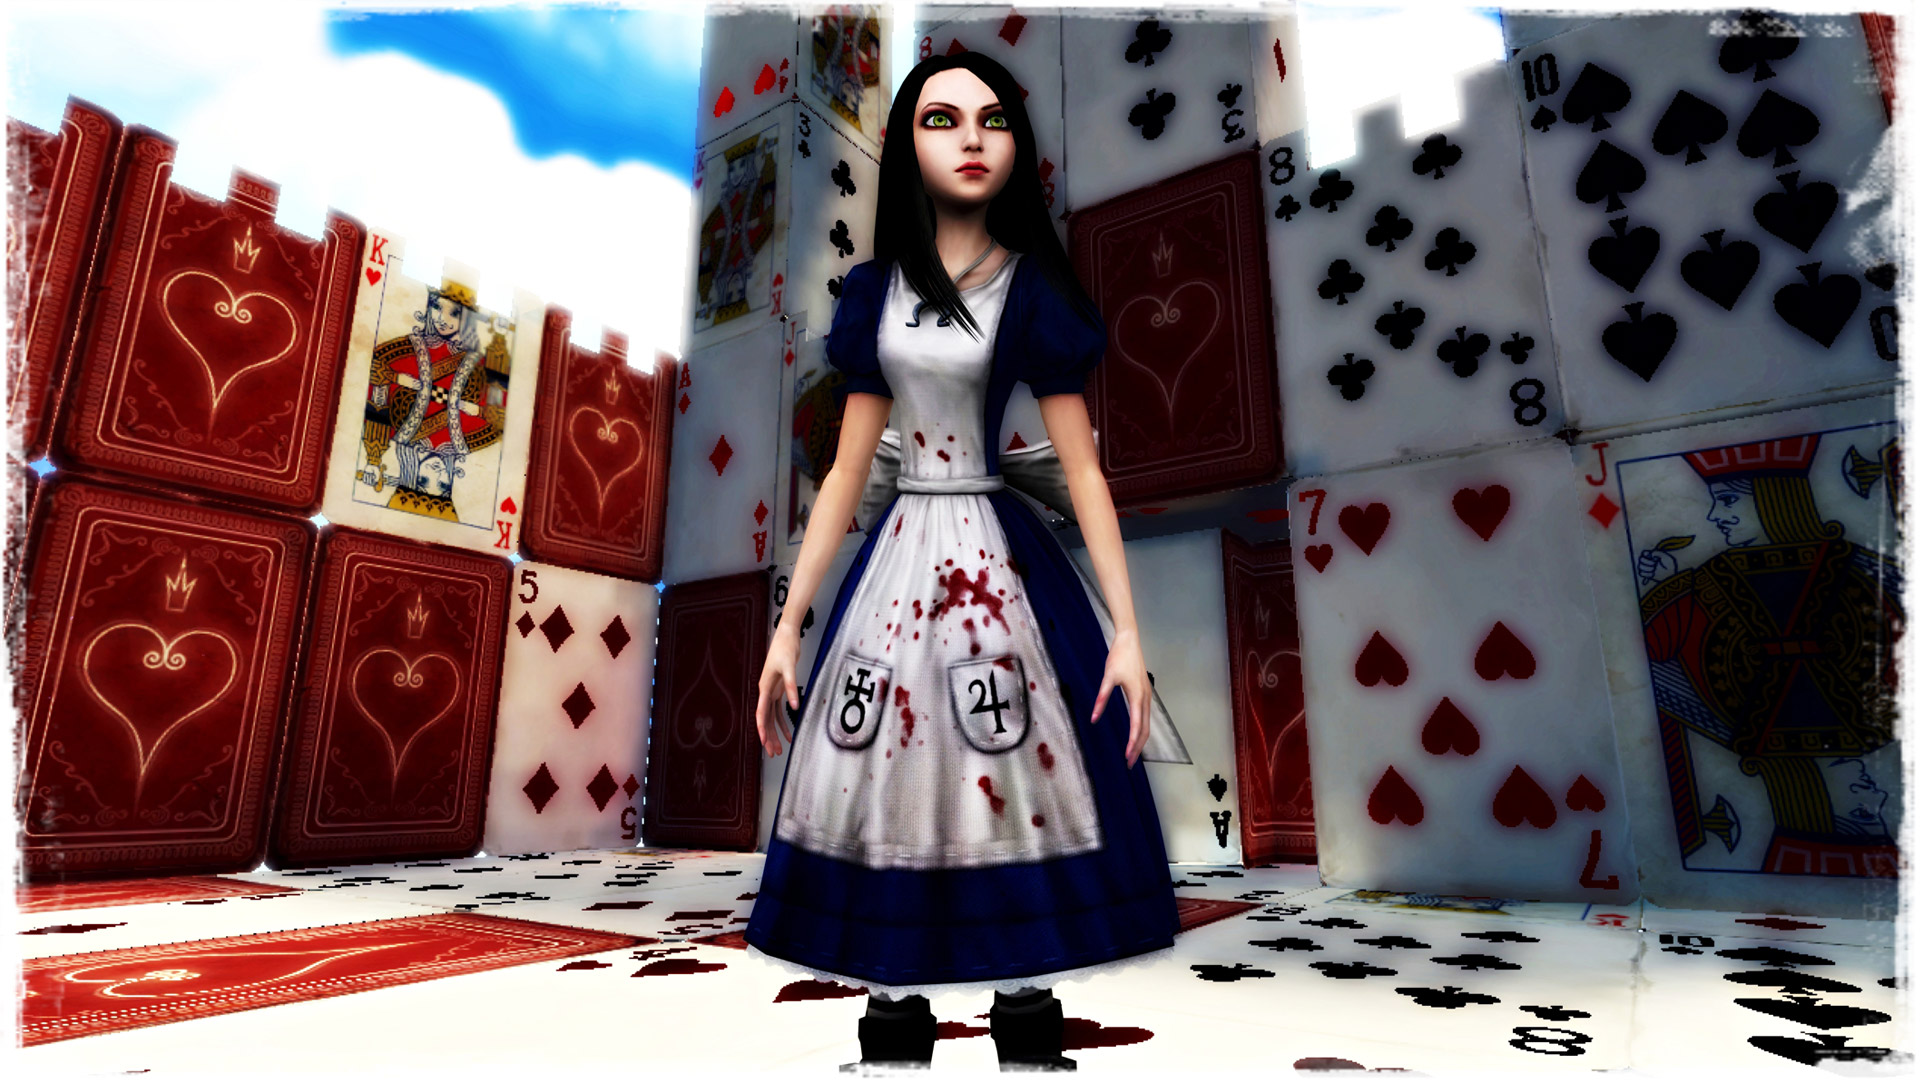 Free Alice: Madness Returns Wallpaper in 1920x1080